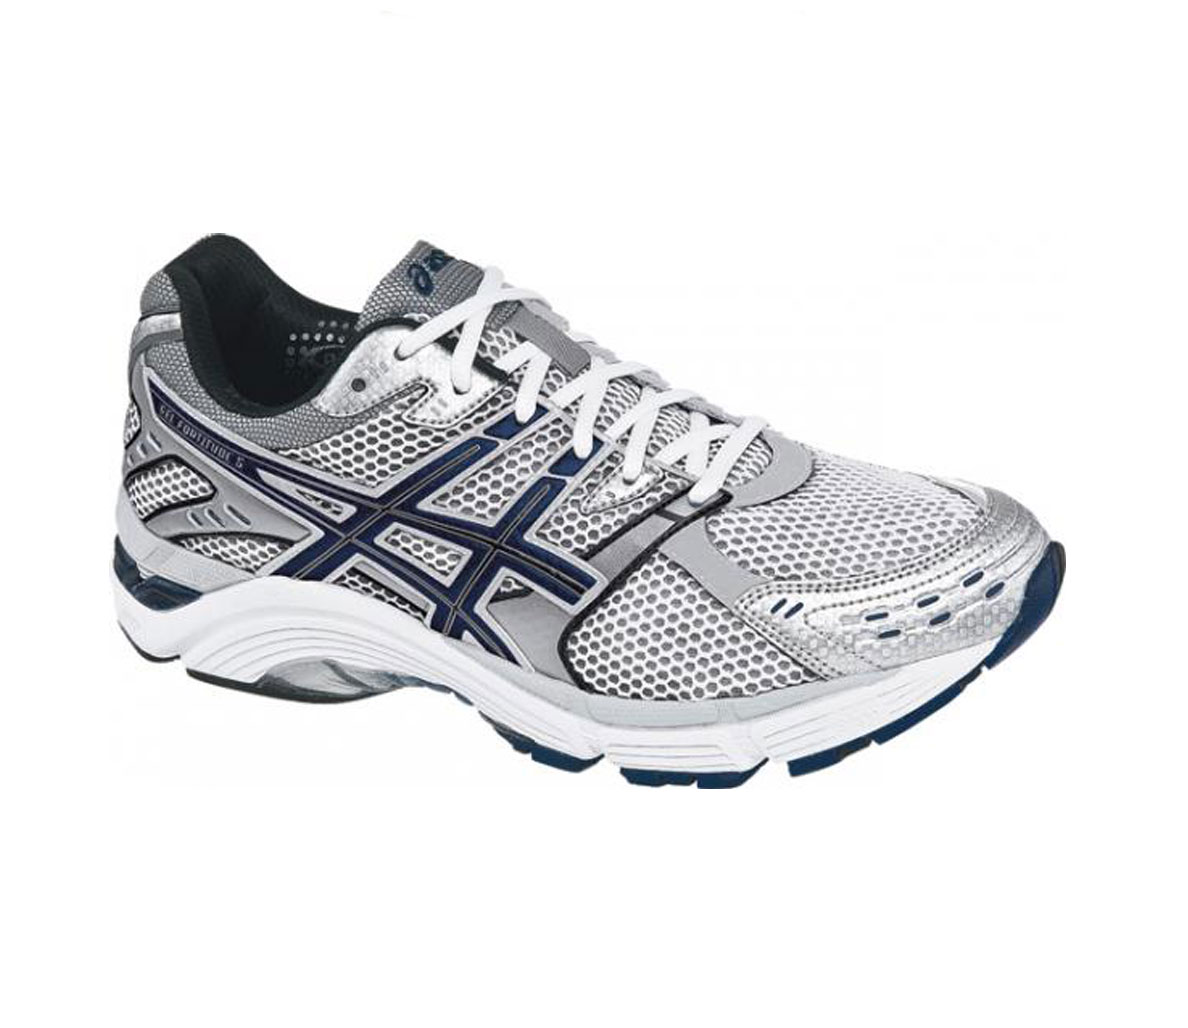 0fb9fadfc4c74 10 Best Running Shoes for Guys With Problem Feet - Men s Journal